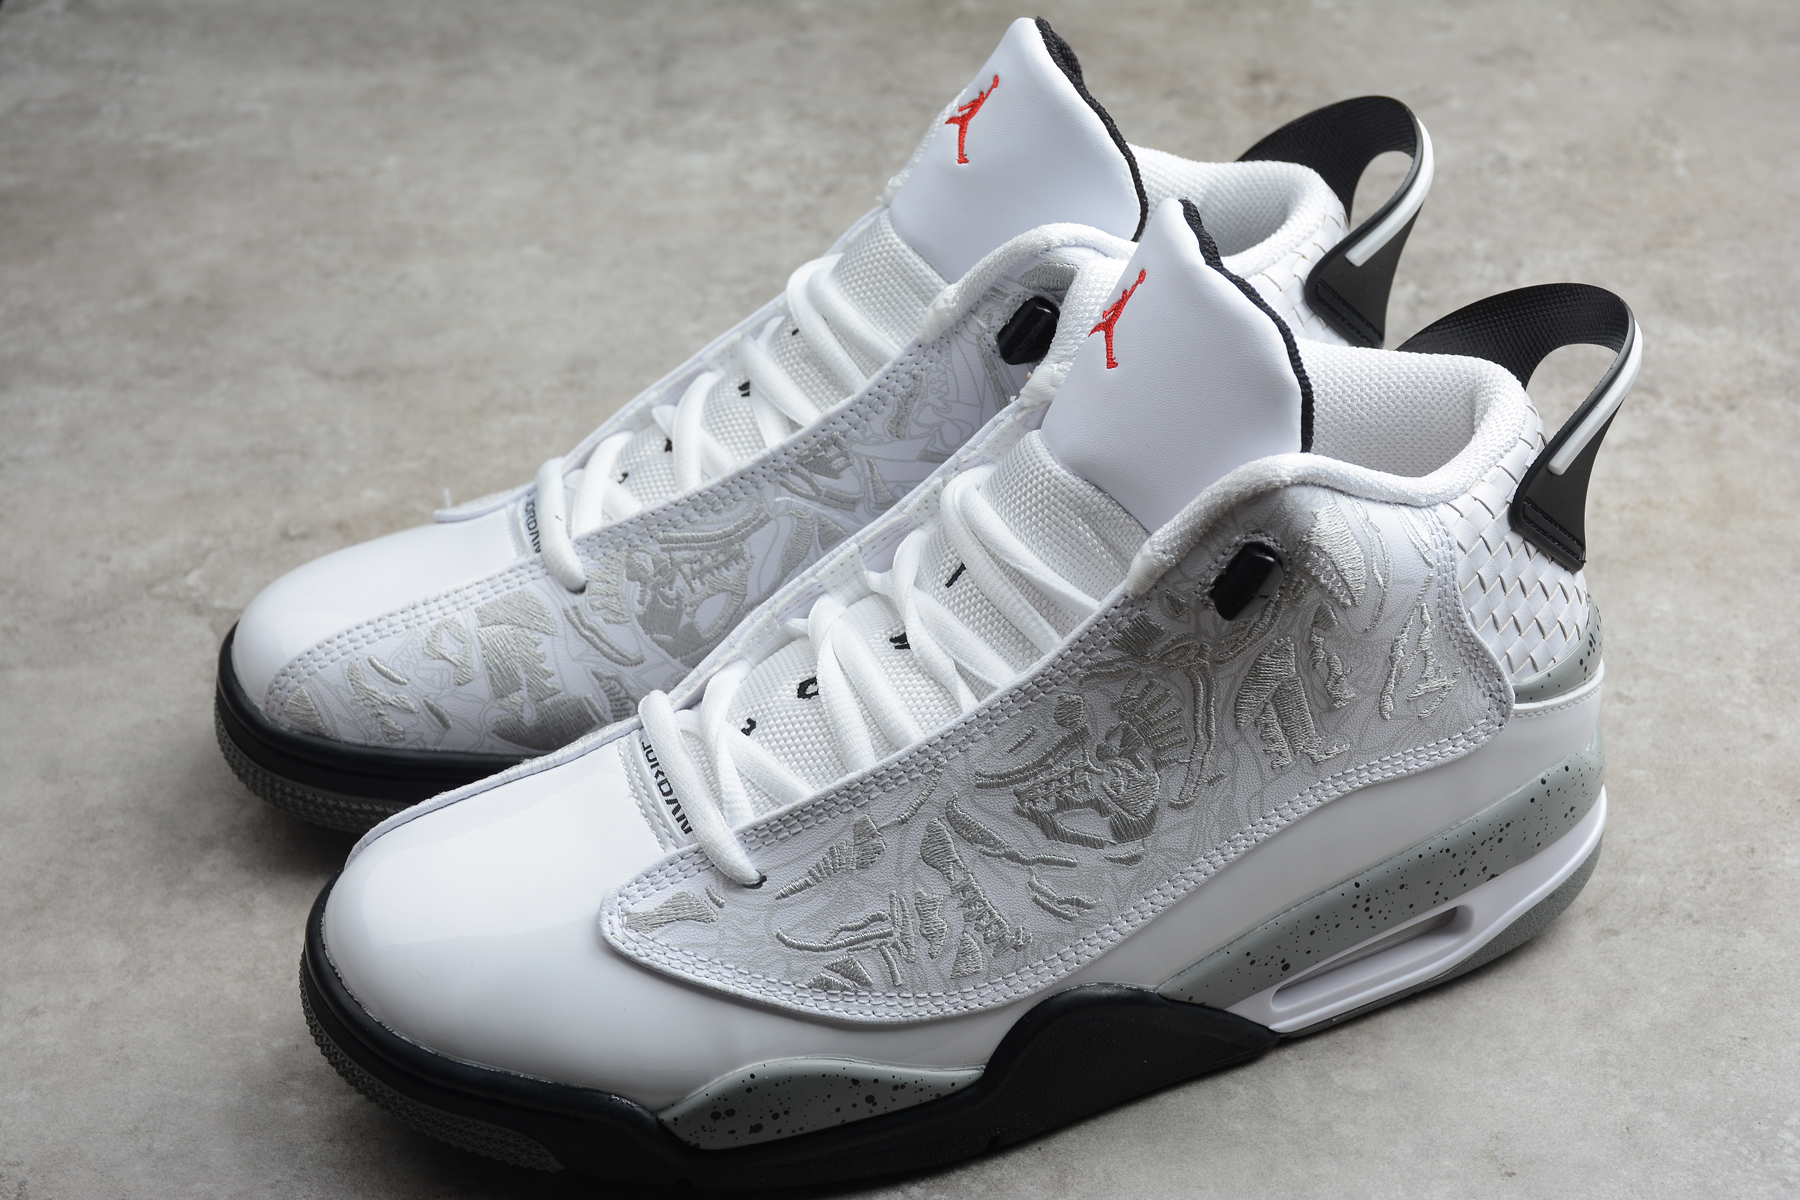 Air Jordan DUB Zero White Black Grey Shoes